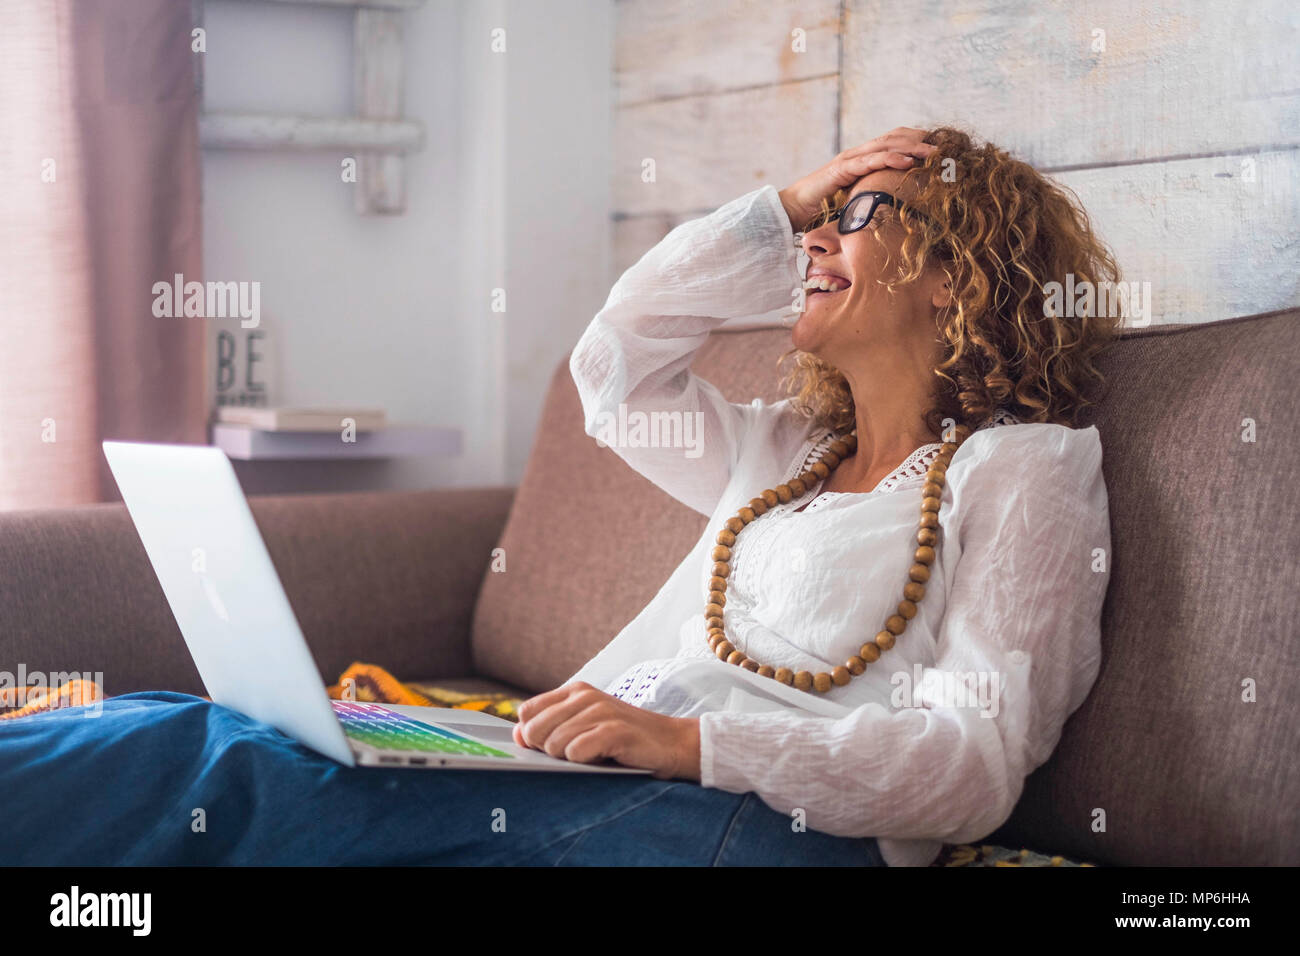 smile and laughing caucasian beautiful middle age woman sit down on the sofa at home with a colored keyboard laptop. working happy independent concept - Stock Image